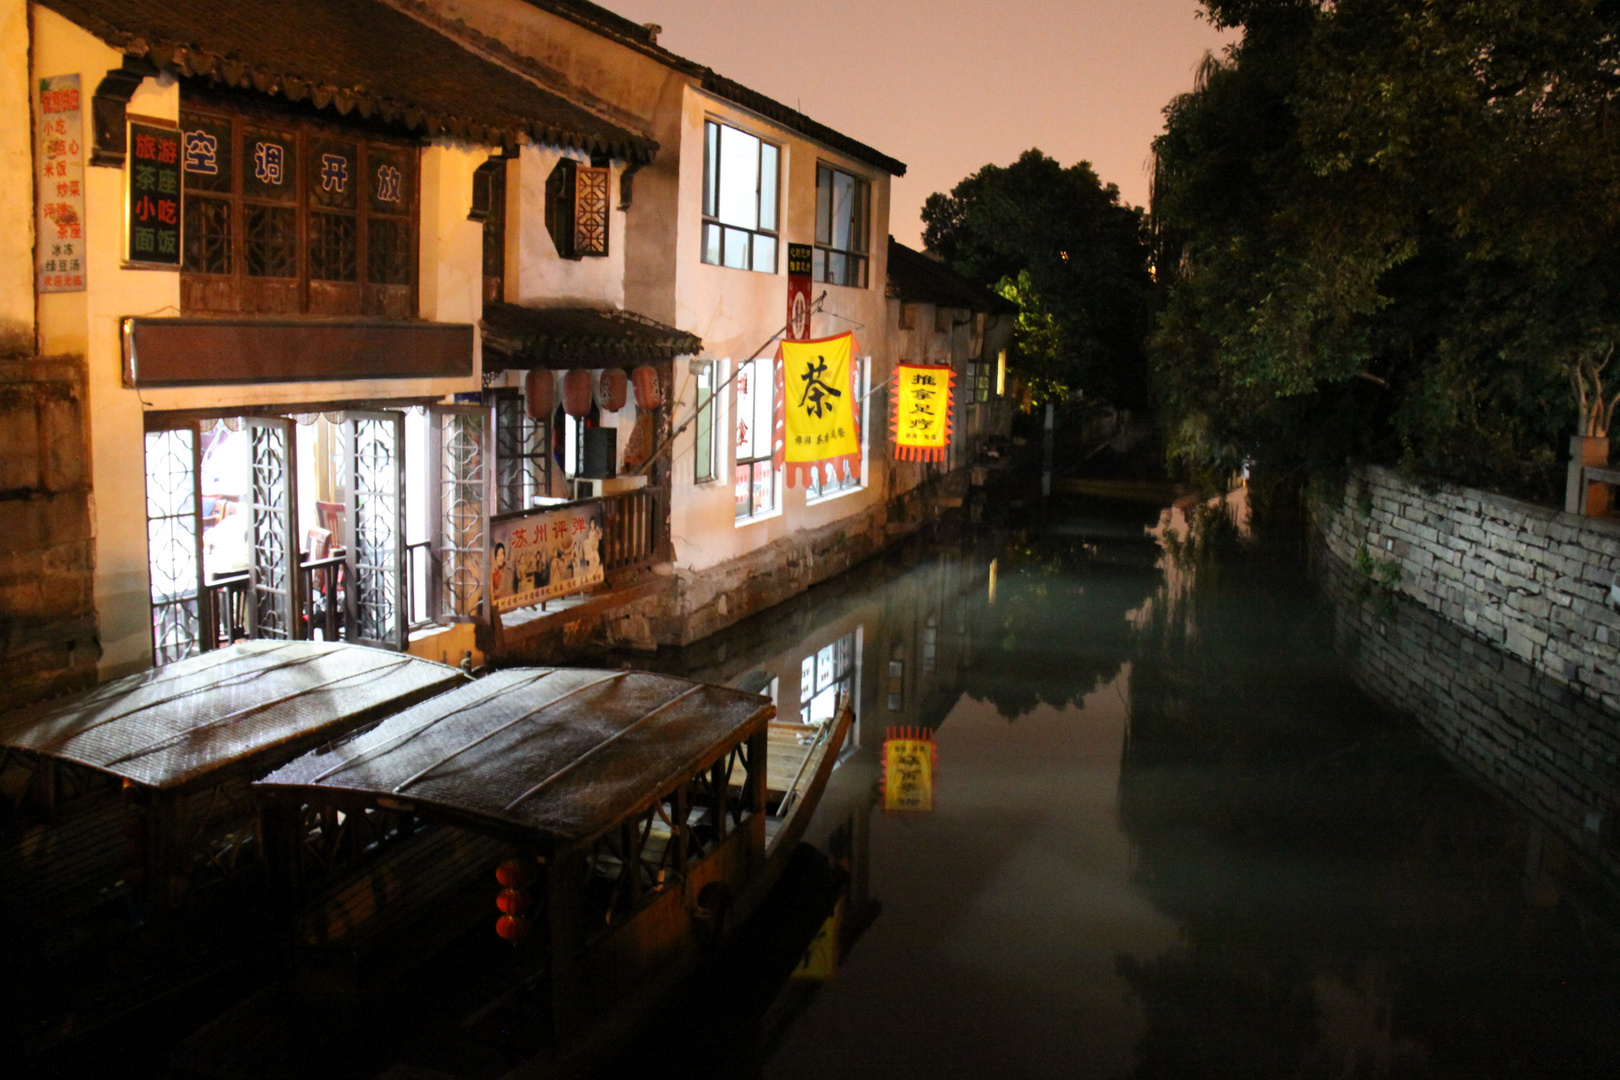 After a busy day in Suzhou